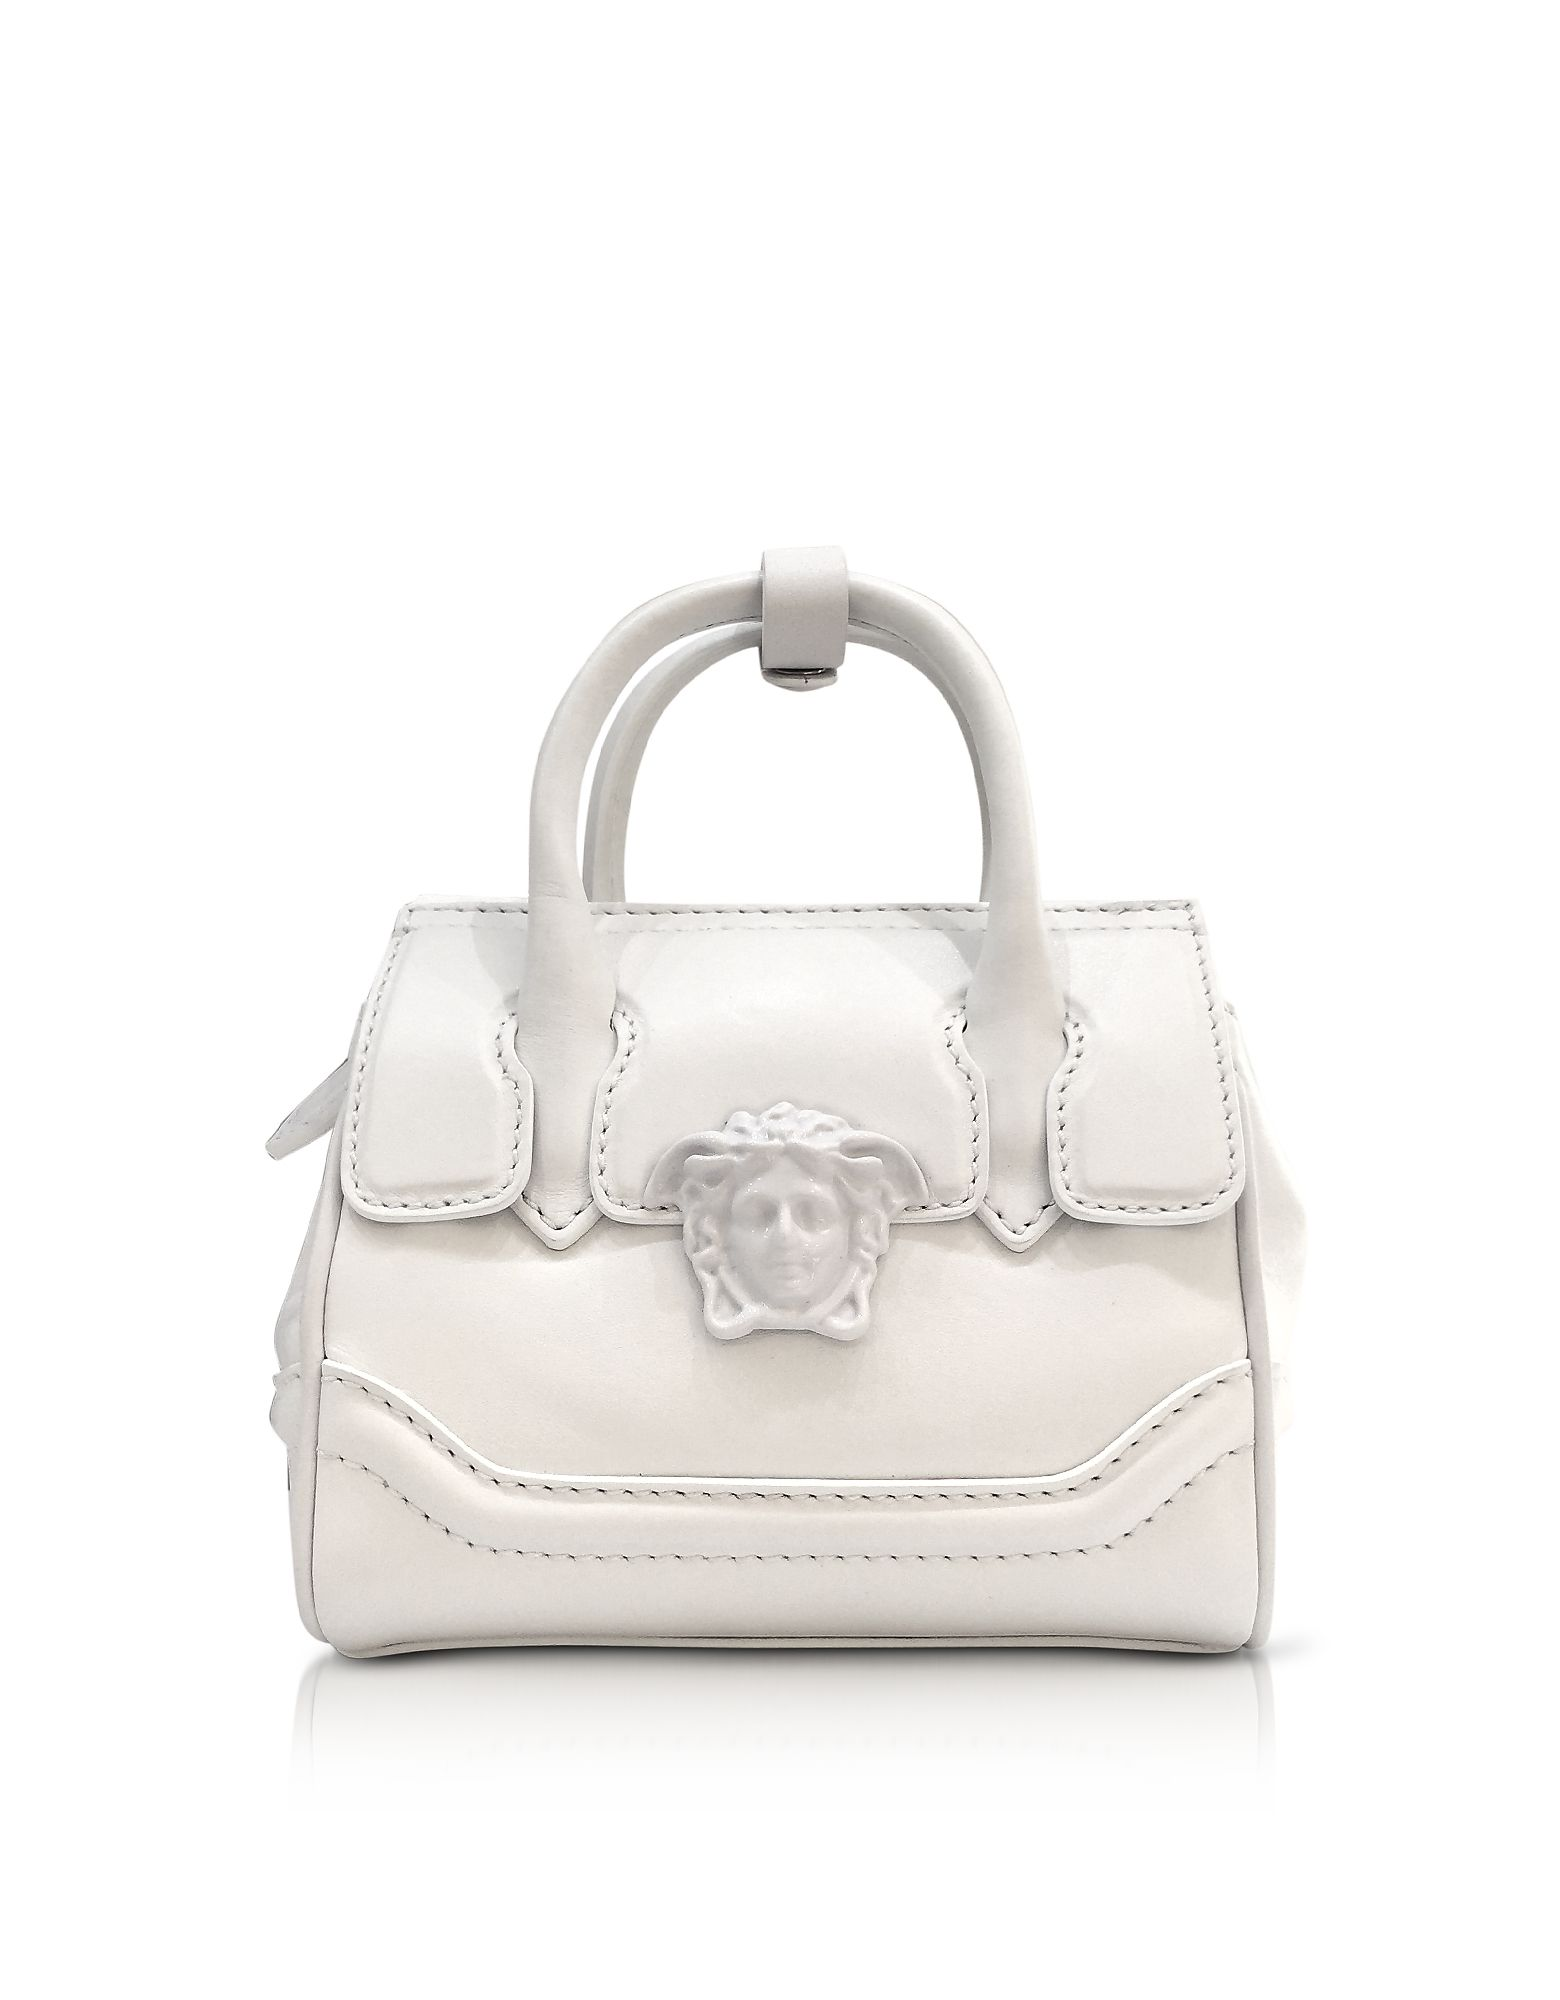 Versace Palazzo Empire White Leather Mini Handbag Bags Shoulder